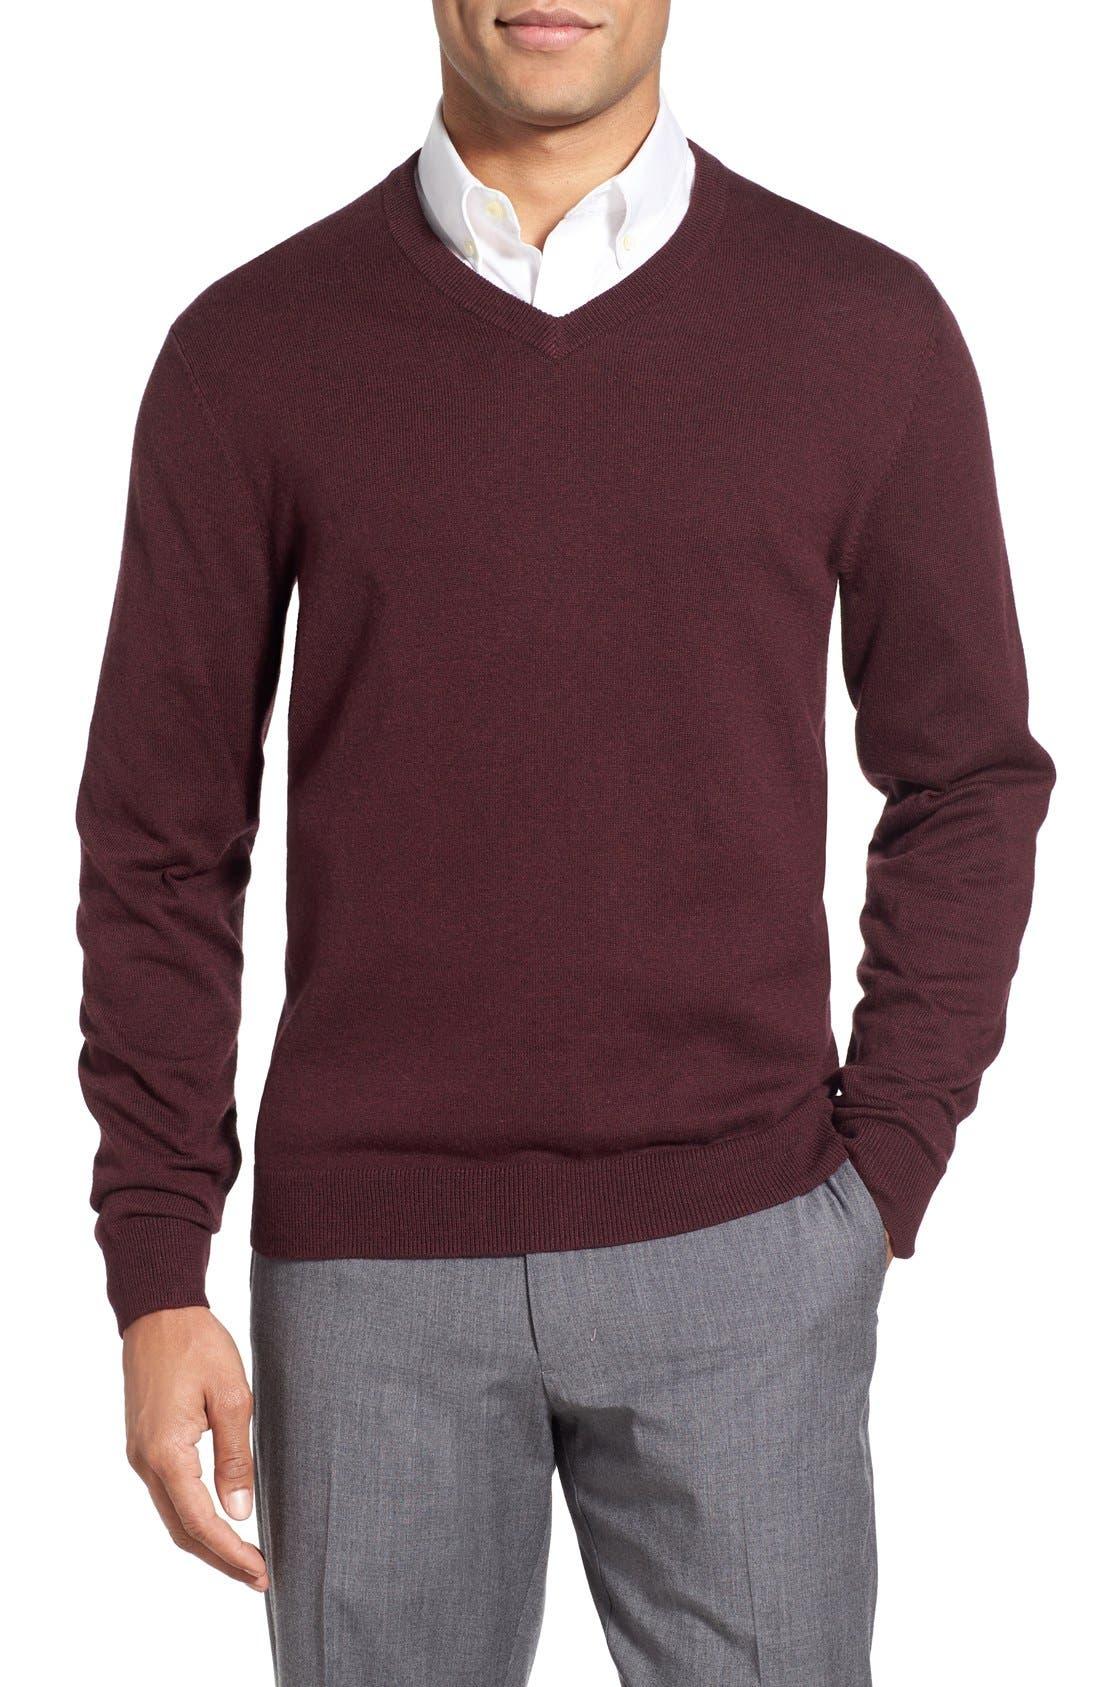 Nordstrom V-Neck Sweater (Big)